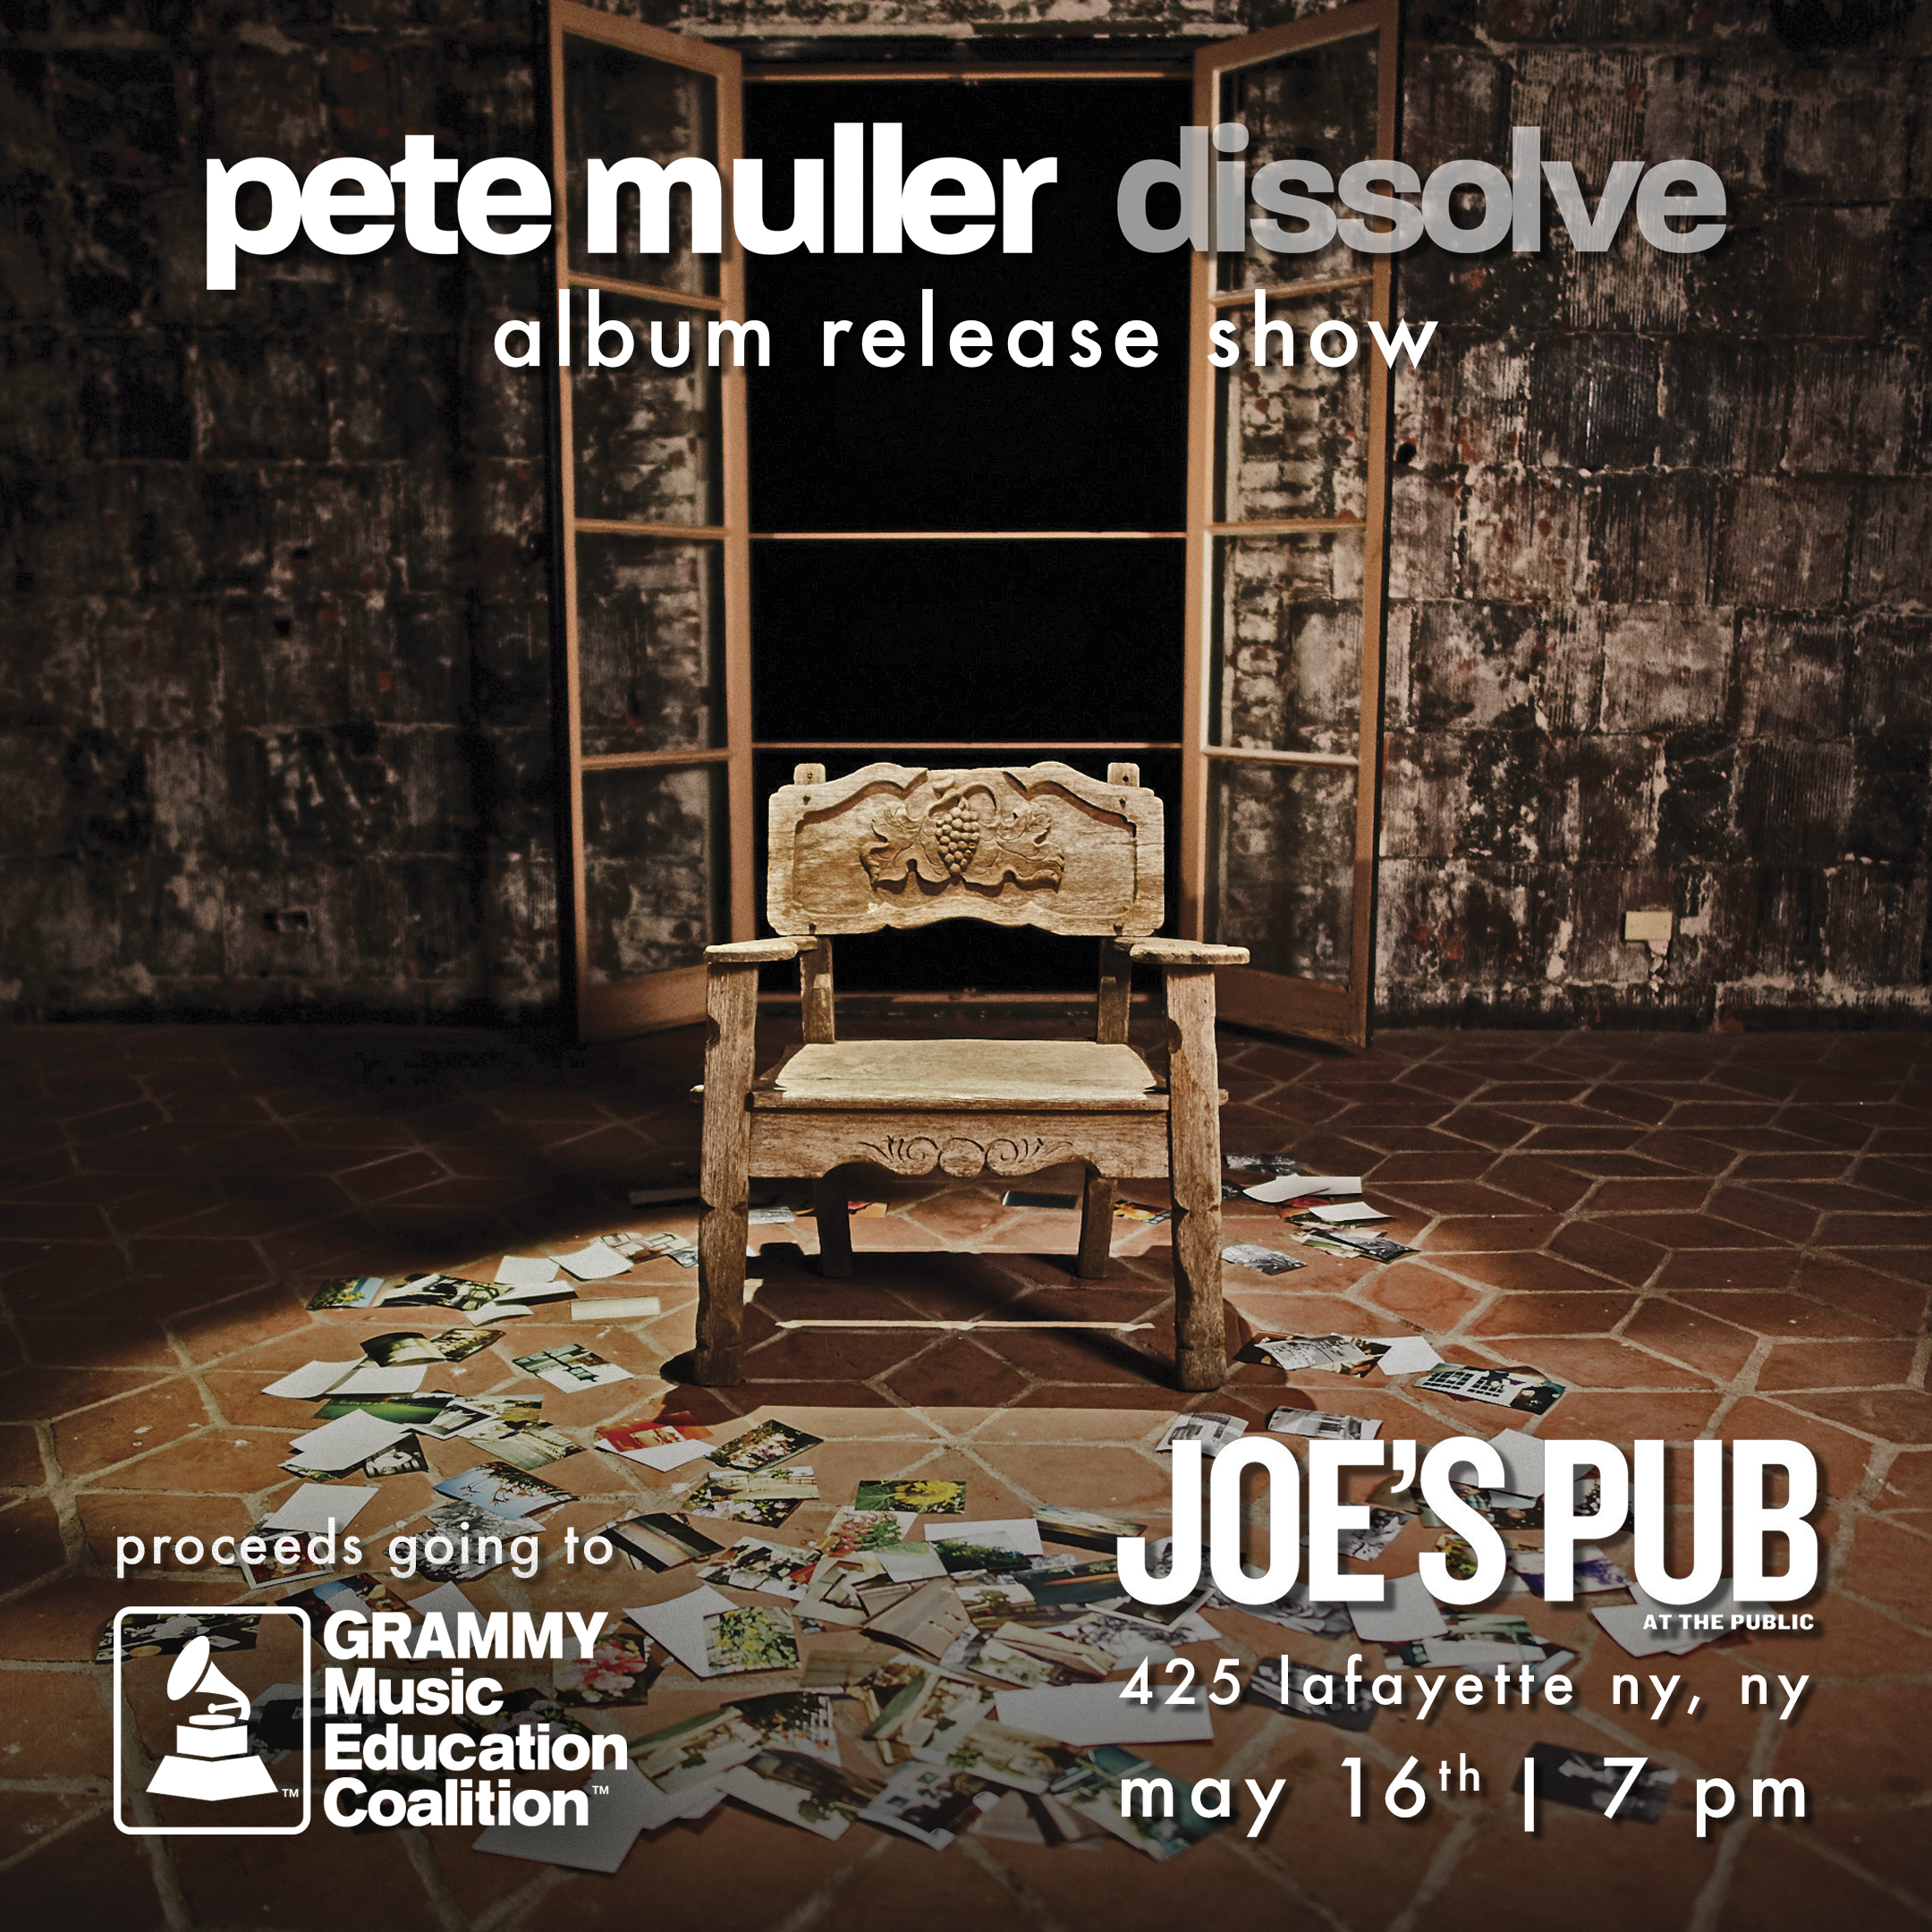 joes pub may 19 v2square.jpg